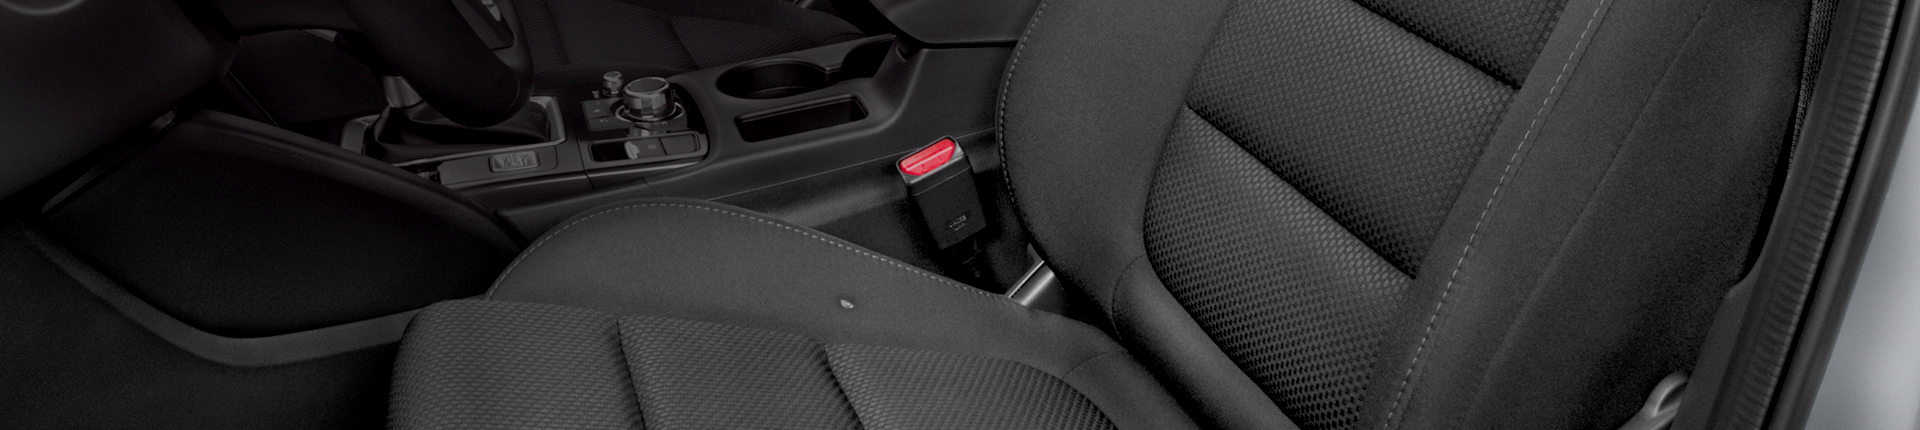 Fabric and Velour Repair System for car seats, trim and